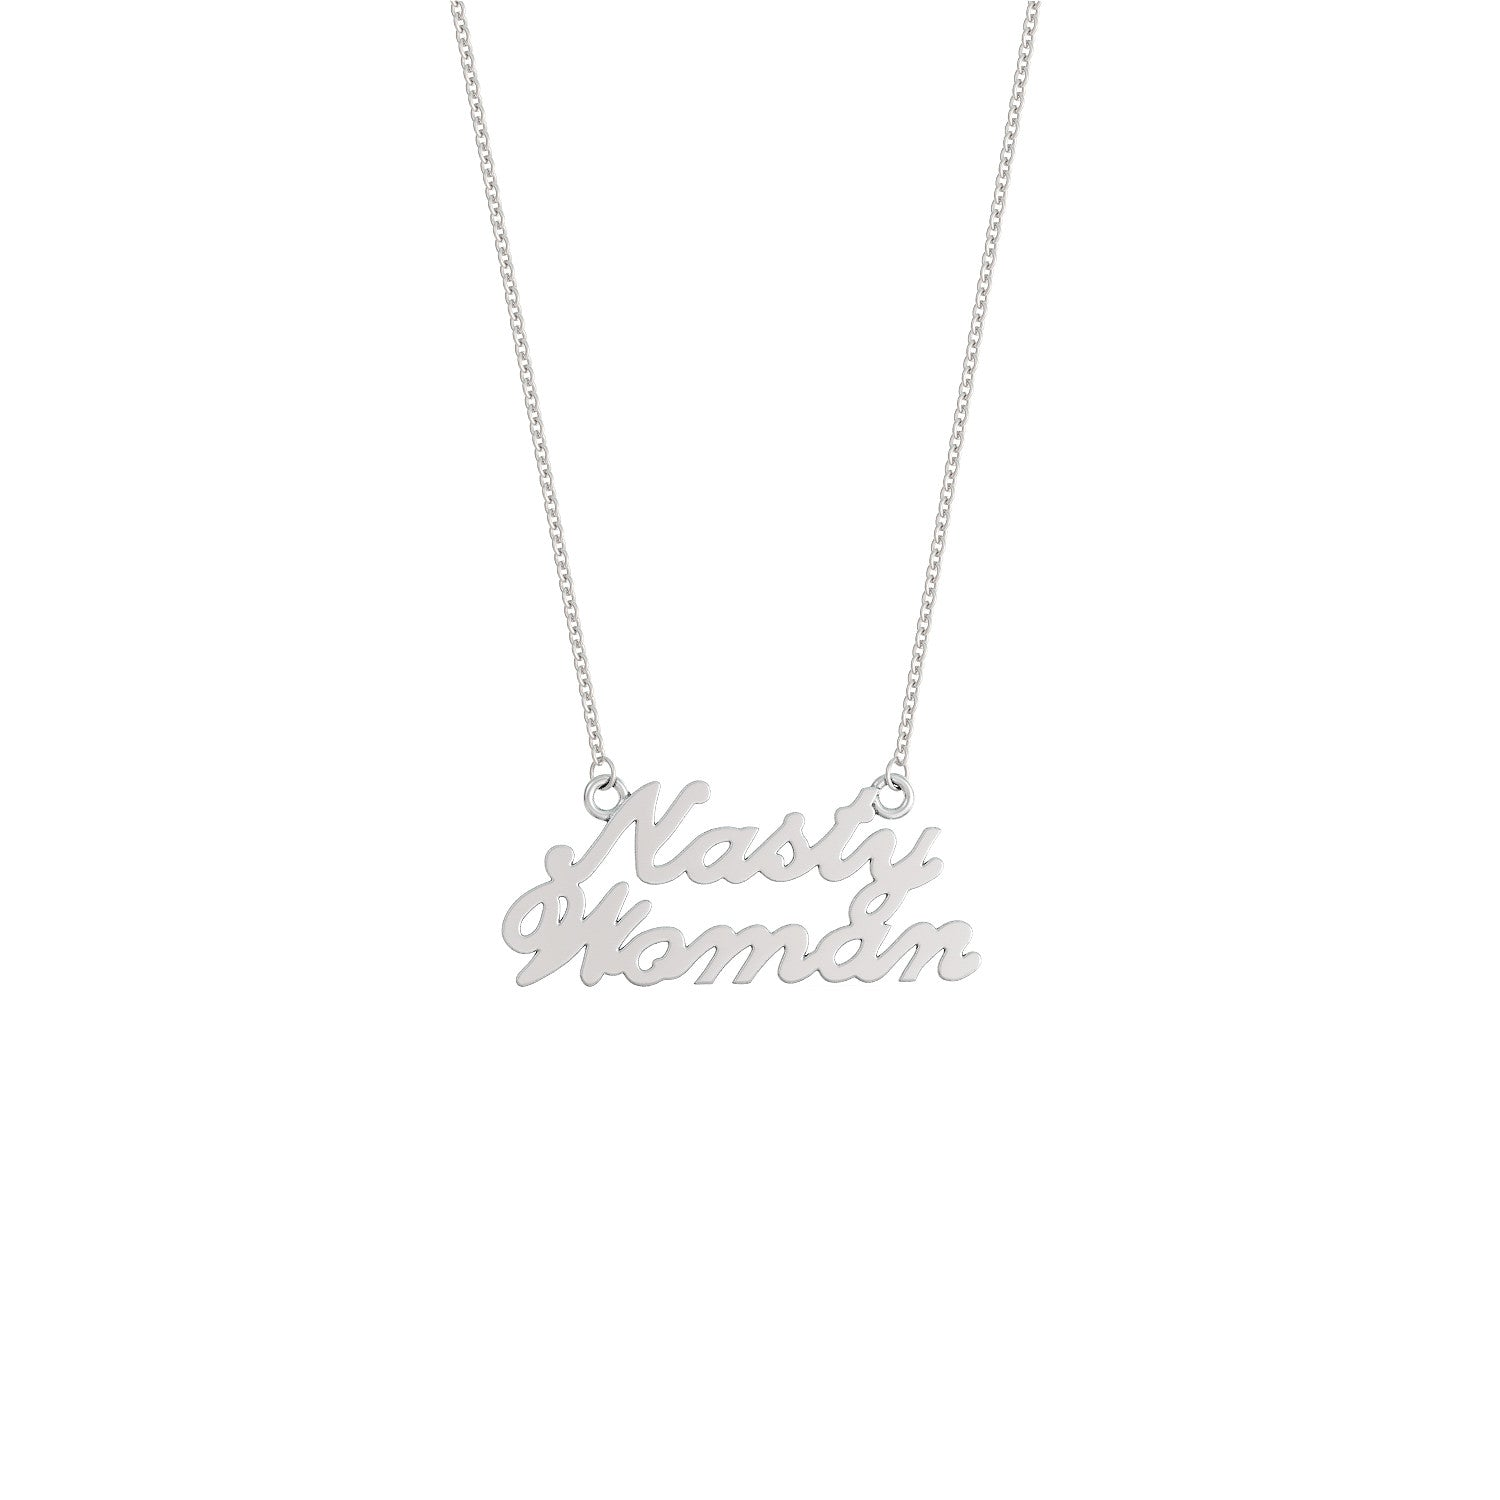 Nasty Woman Pendant Necklace